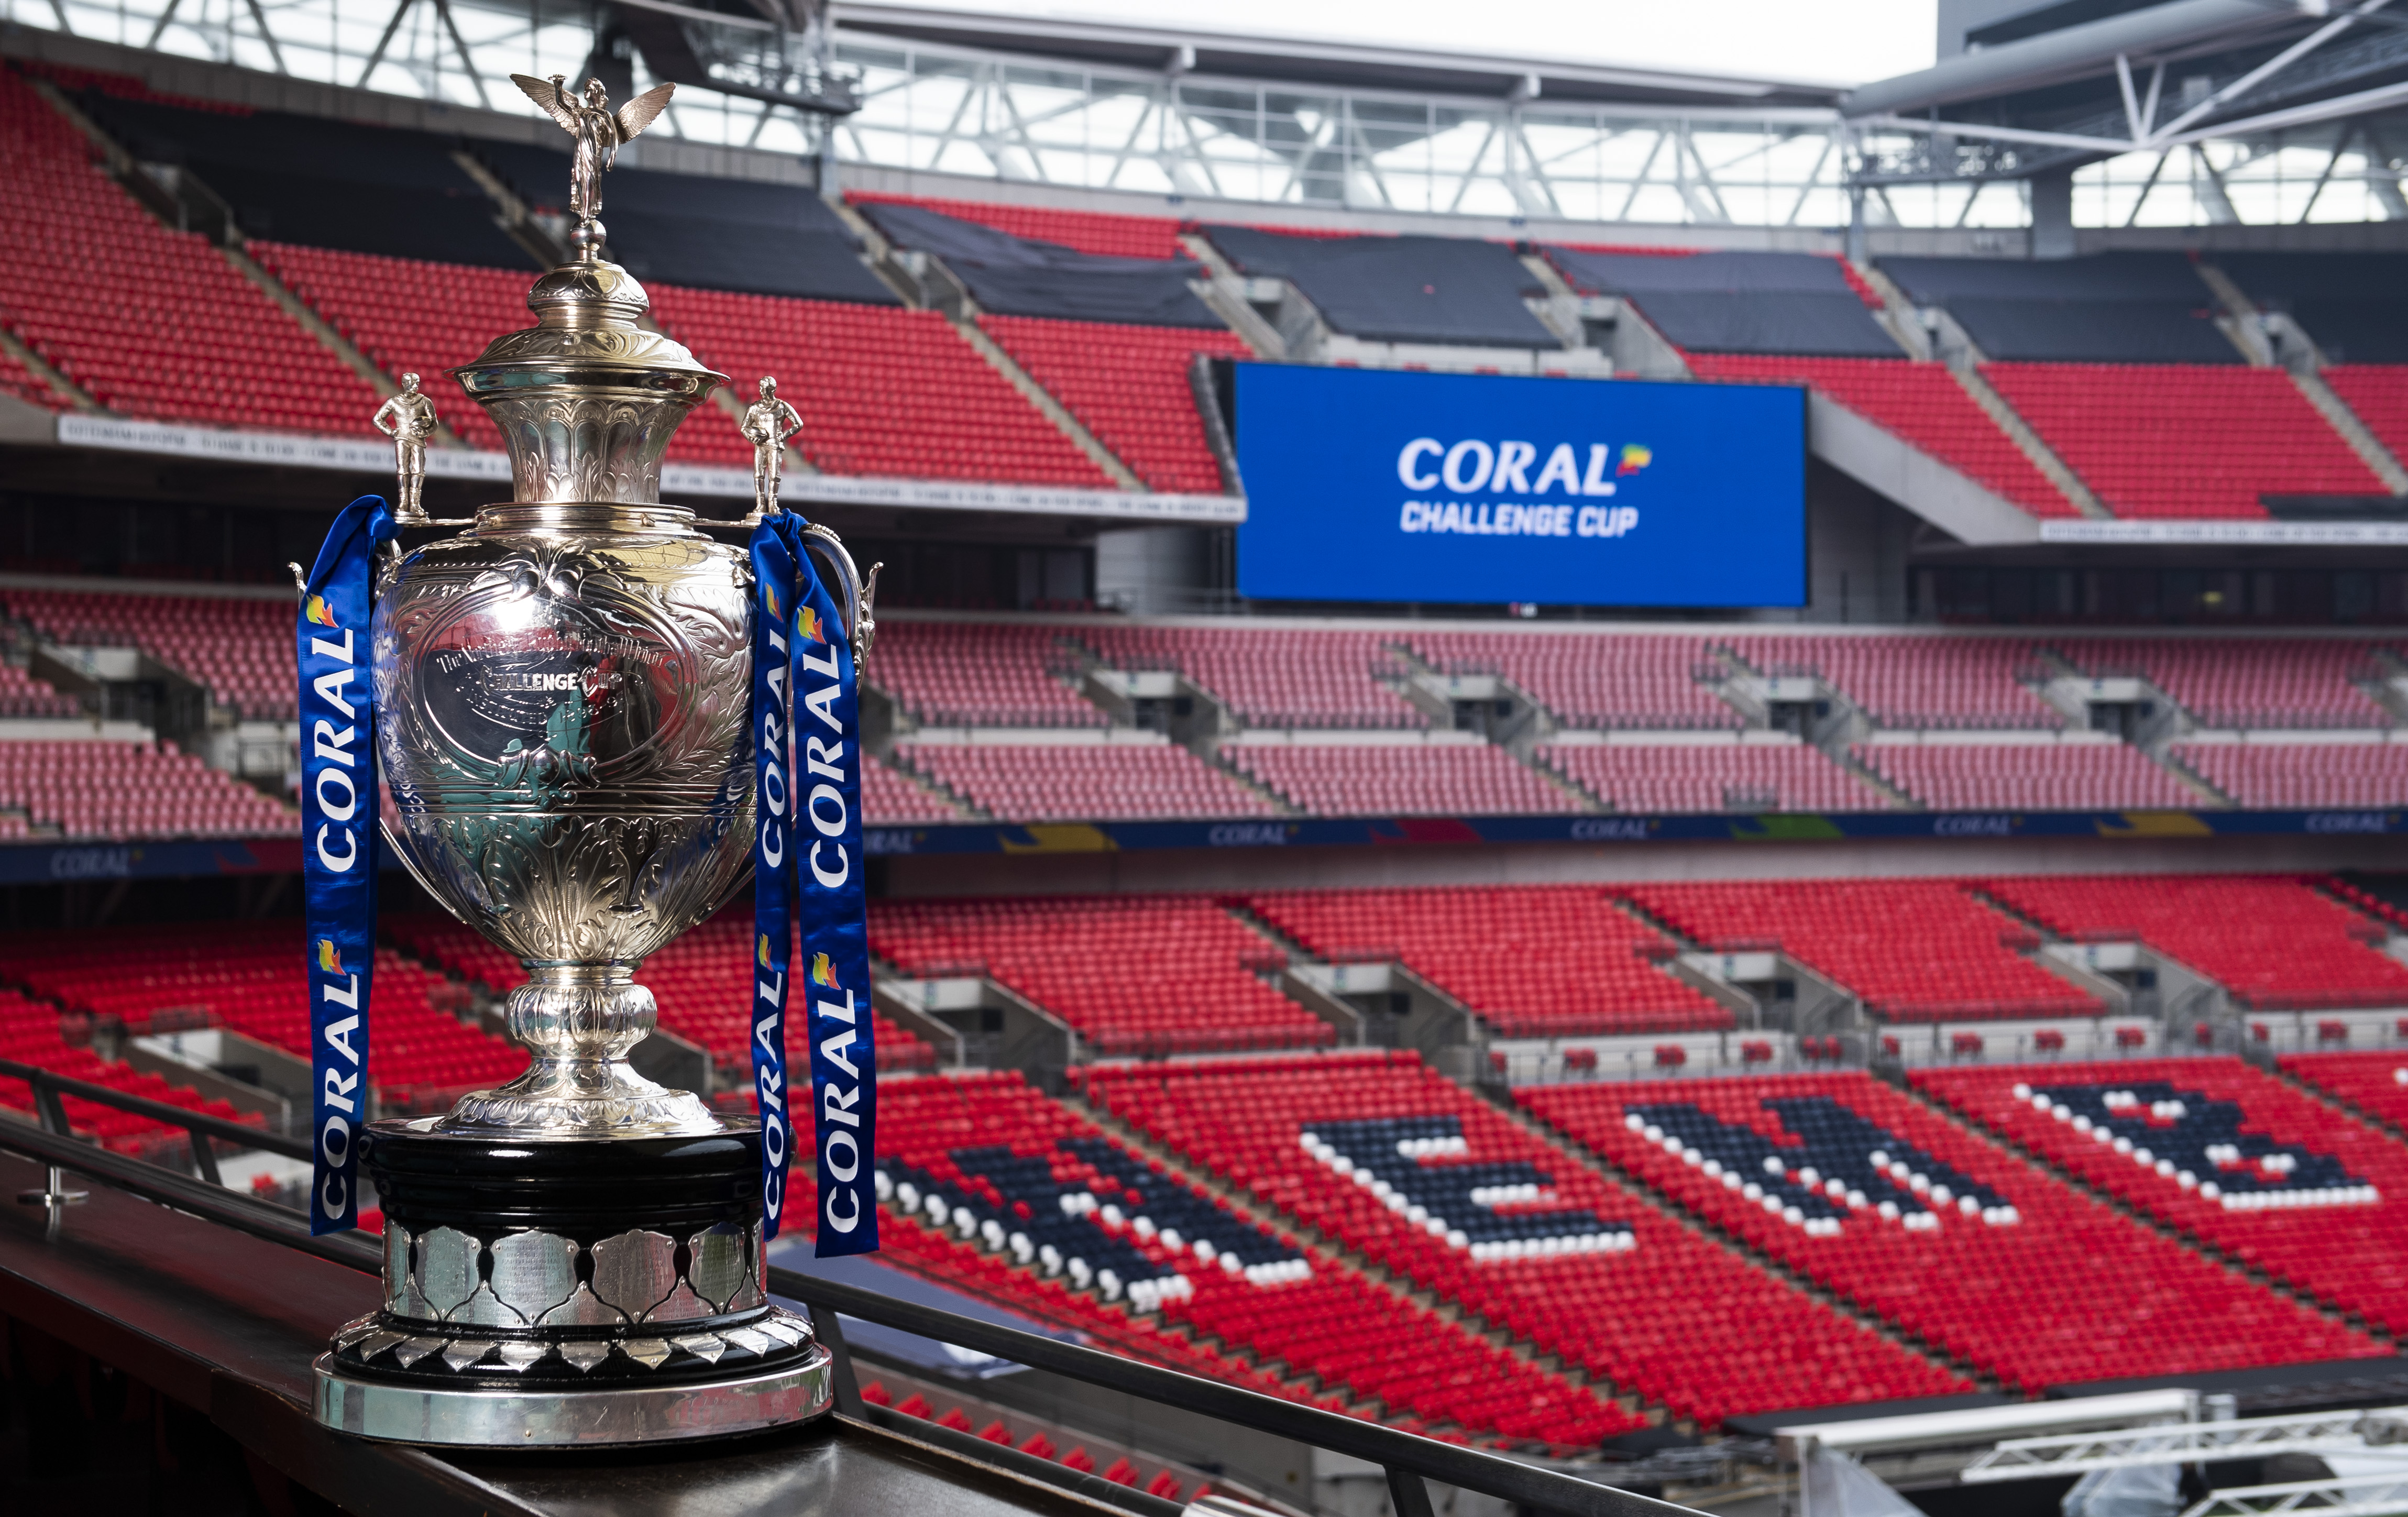 Crusaders travel to London Skolars in Challenge Cup third round